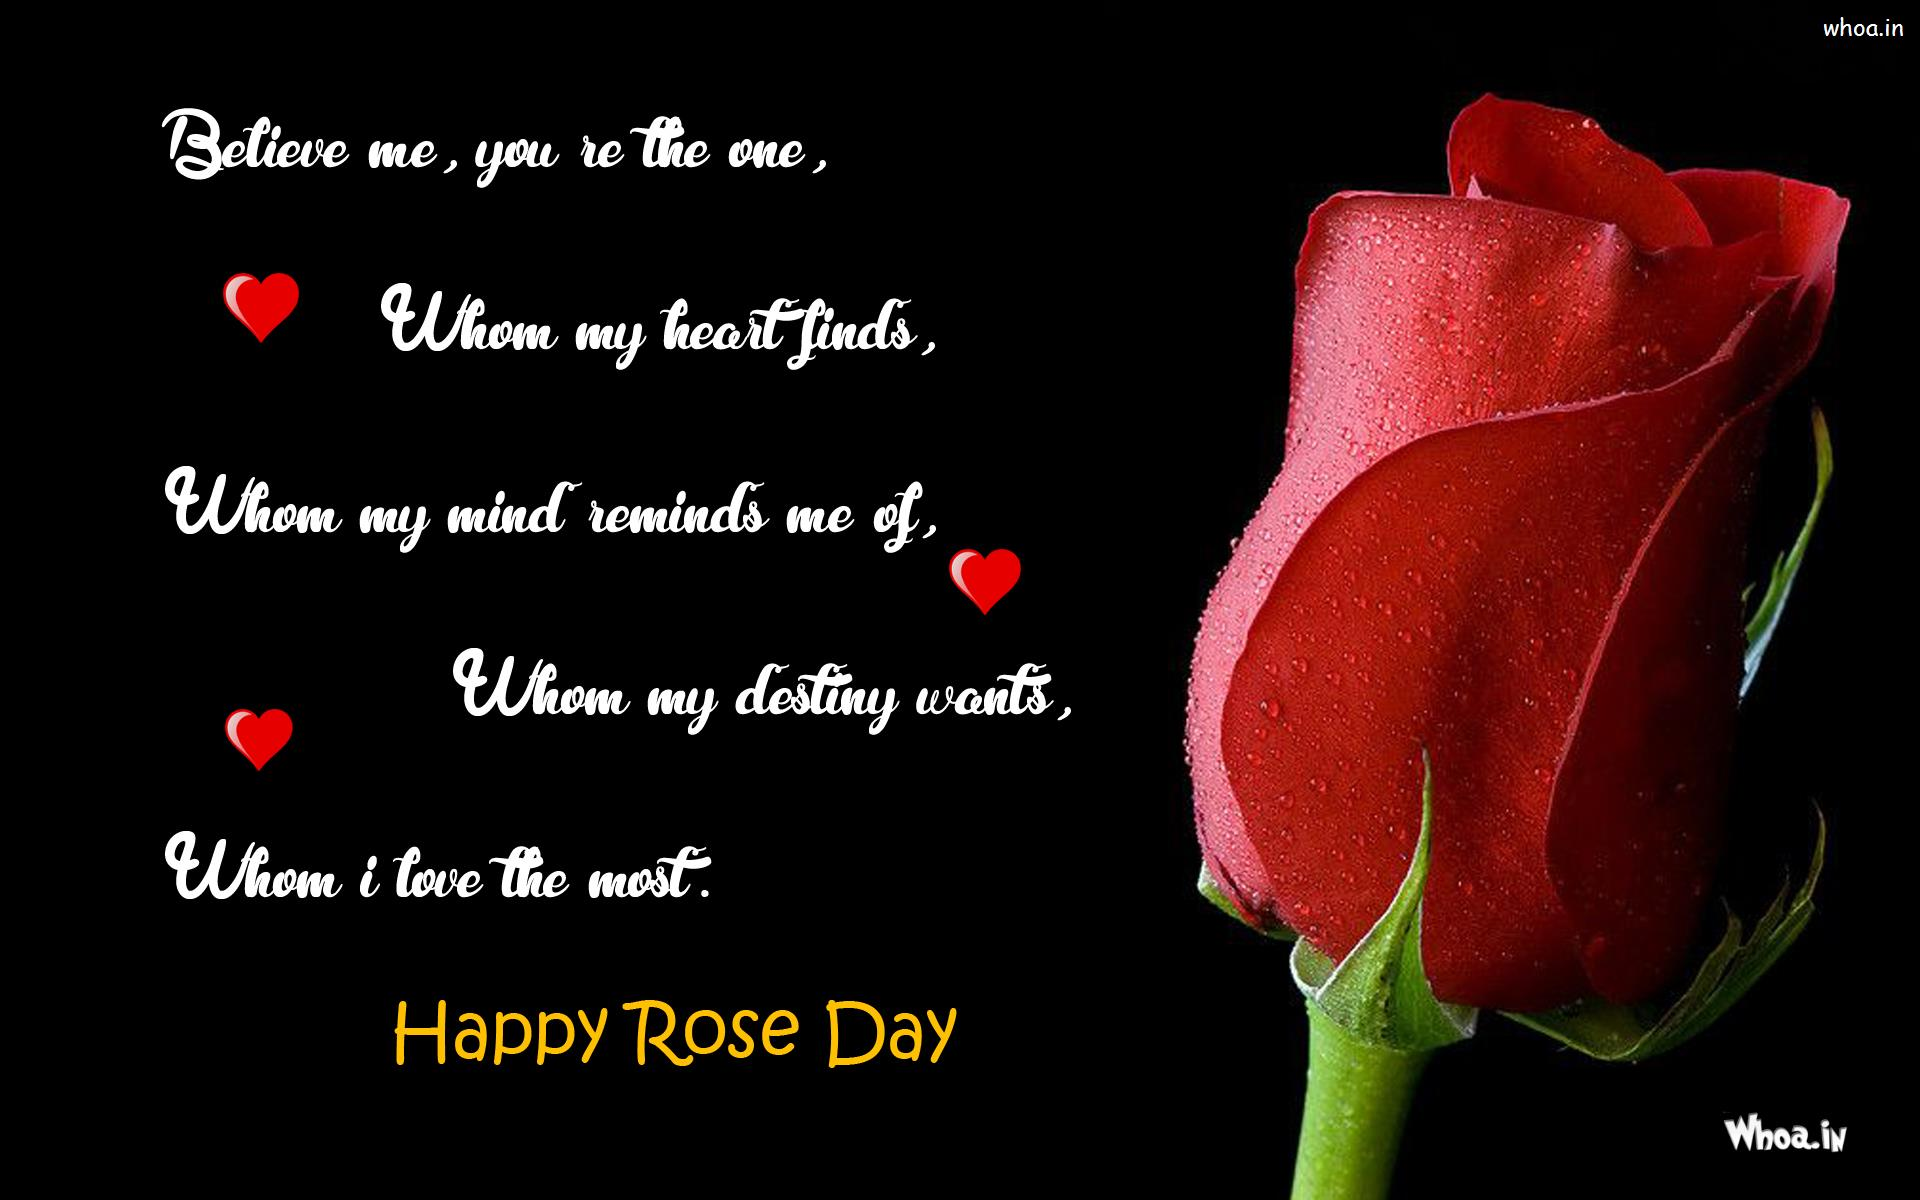 Happy Rose Day Quote Wallpaper Black Background